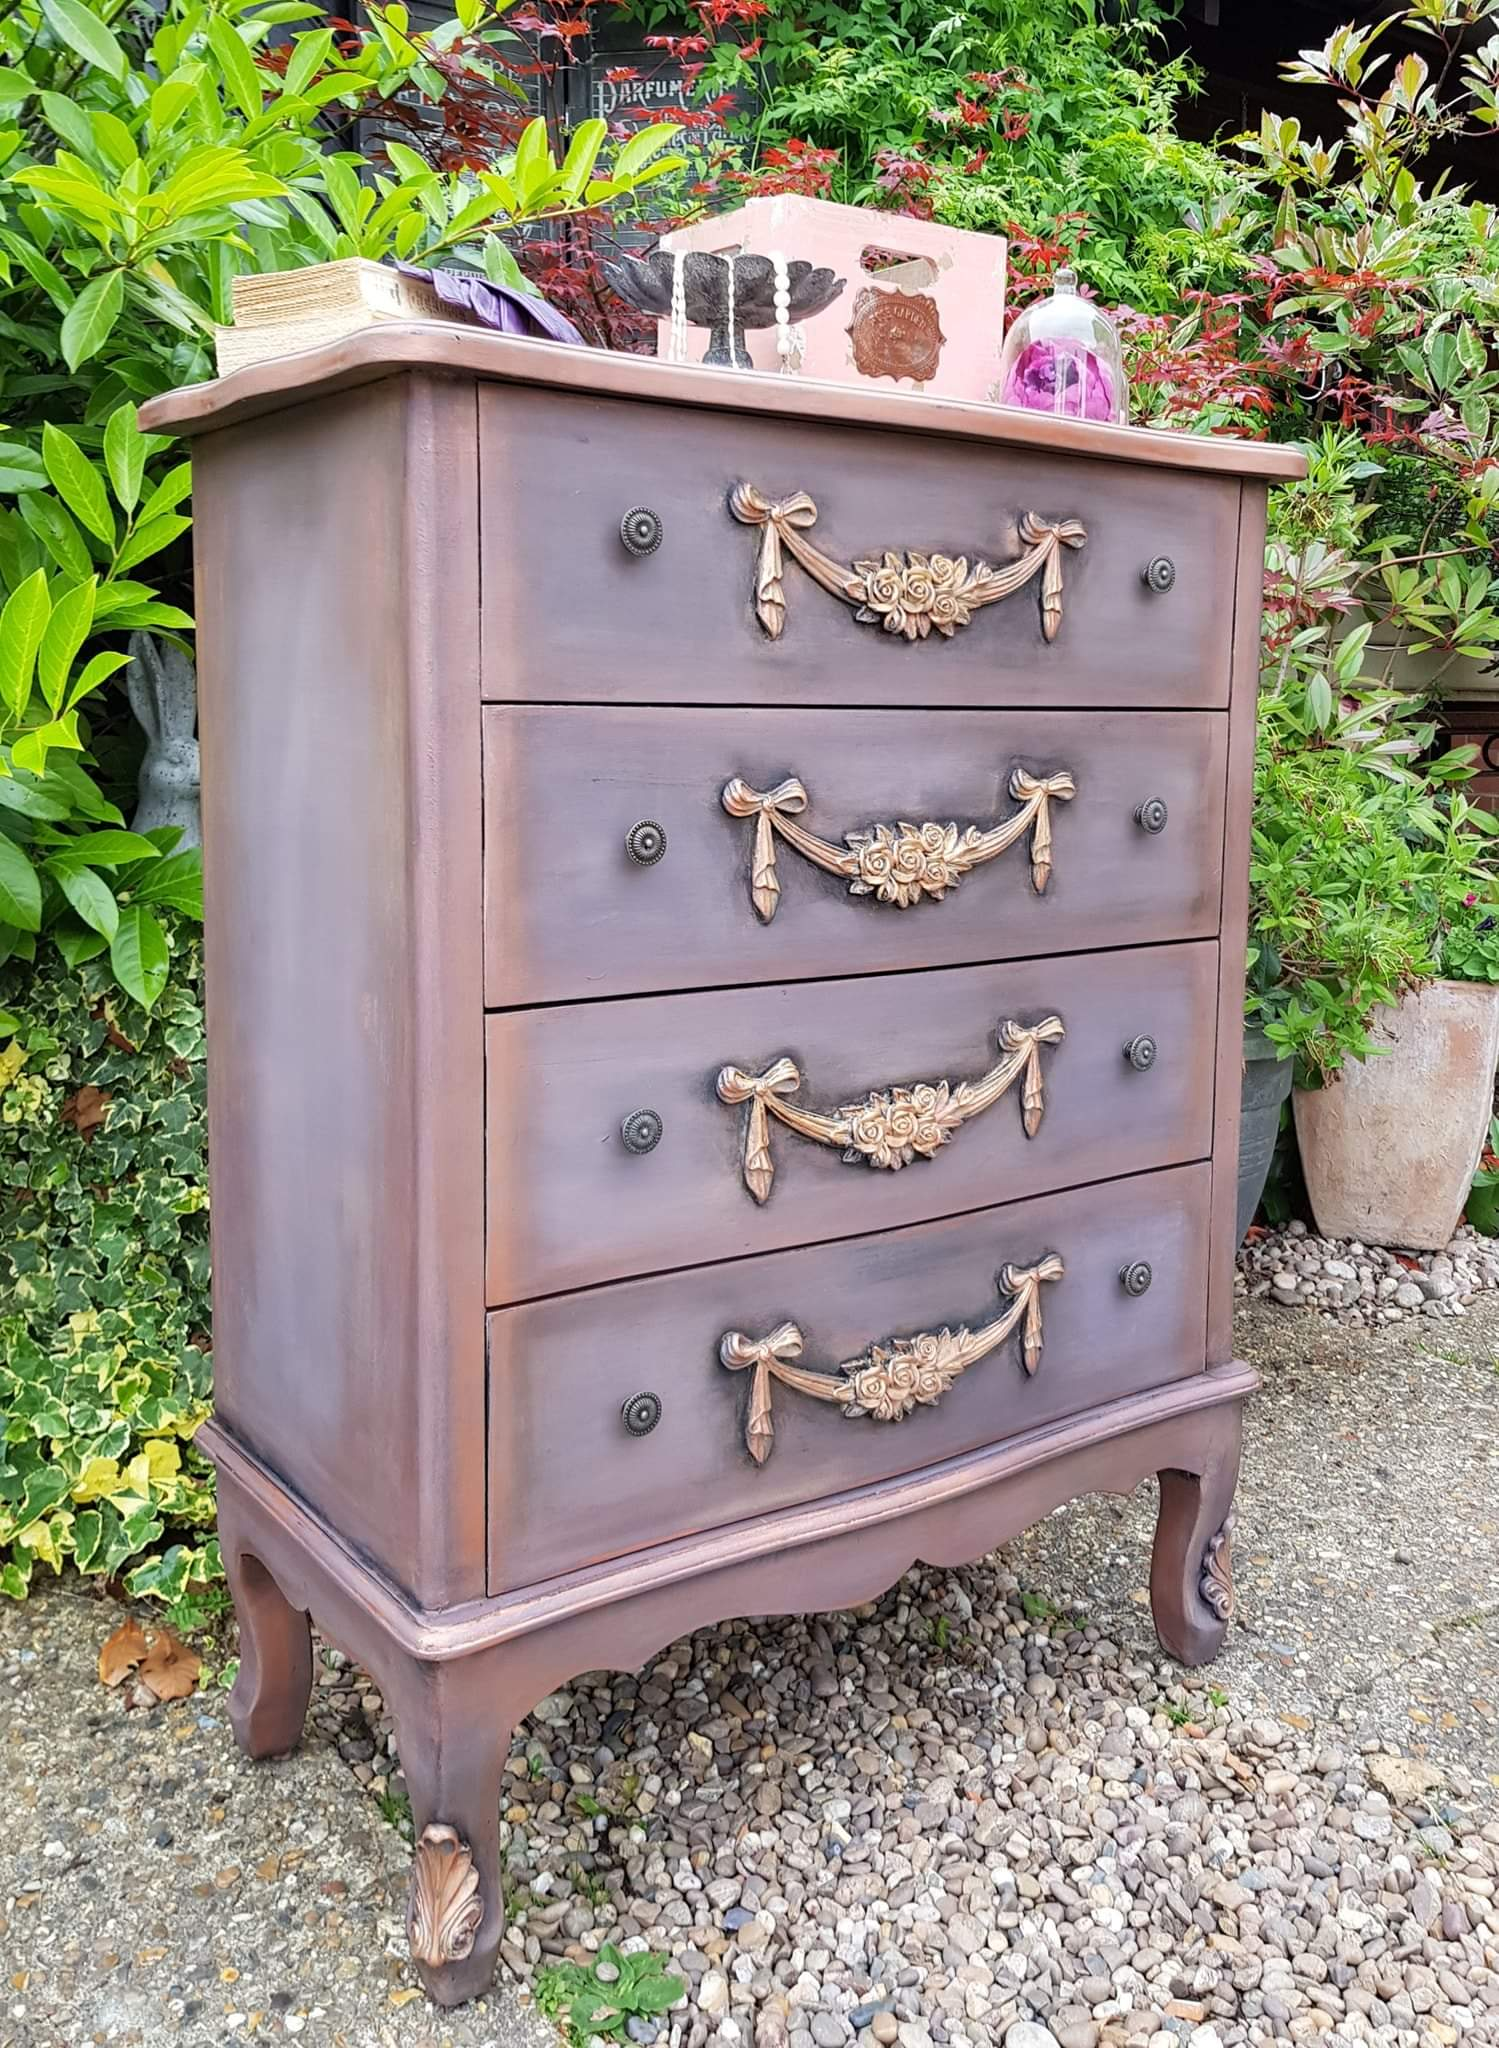 THE ROSE GOLD SHIMMER DRAWERS